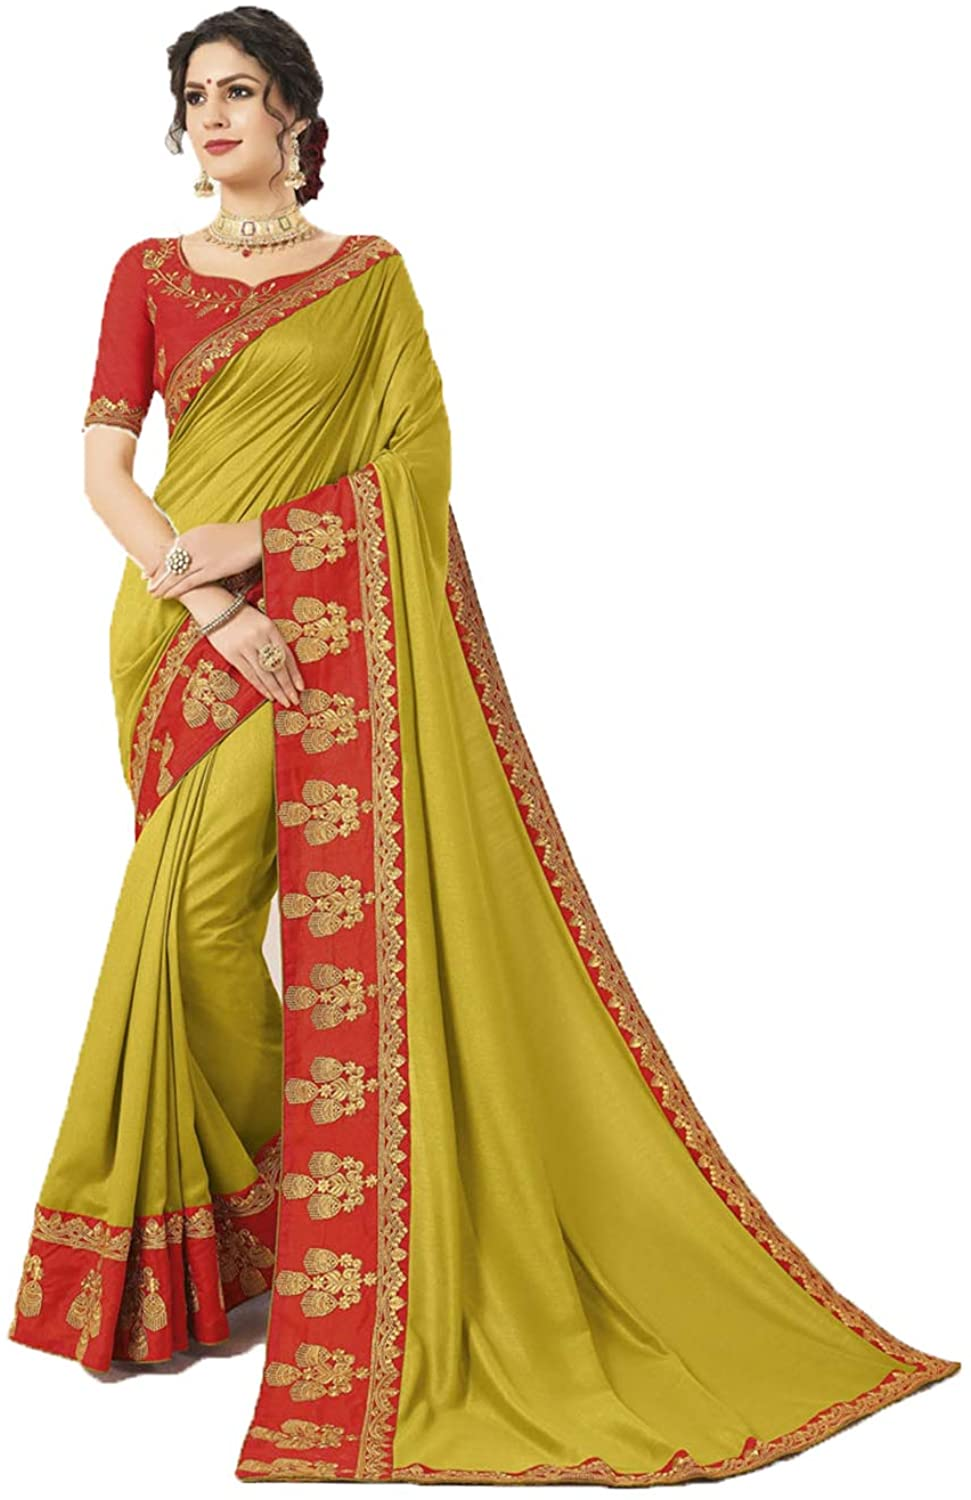 Saree for Women Bollywood Wedding Designer Mehendi Sari with Unstitched Blouse. ICW2556-8